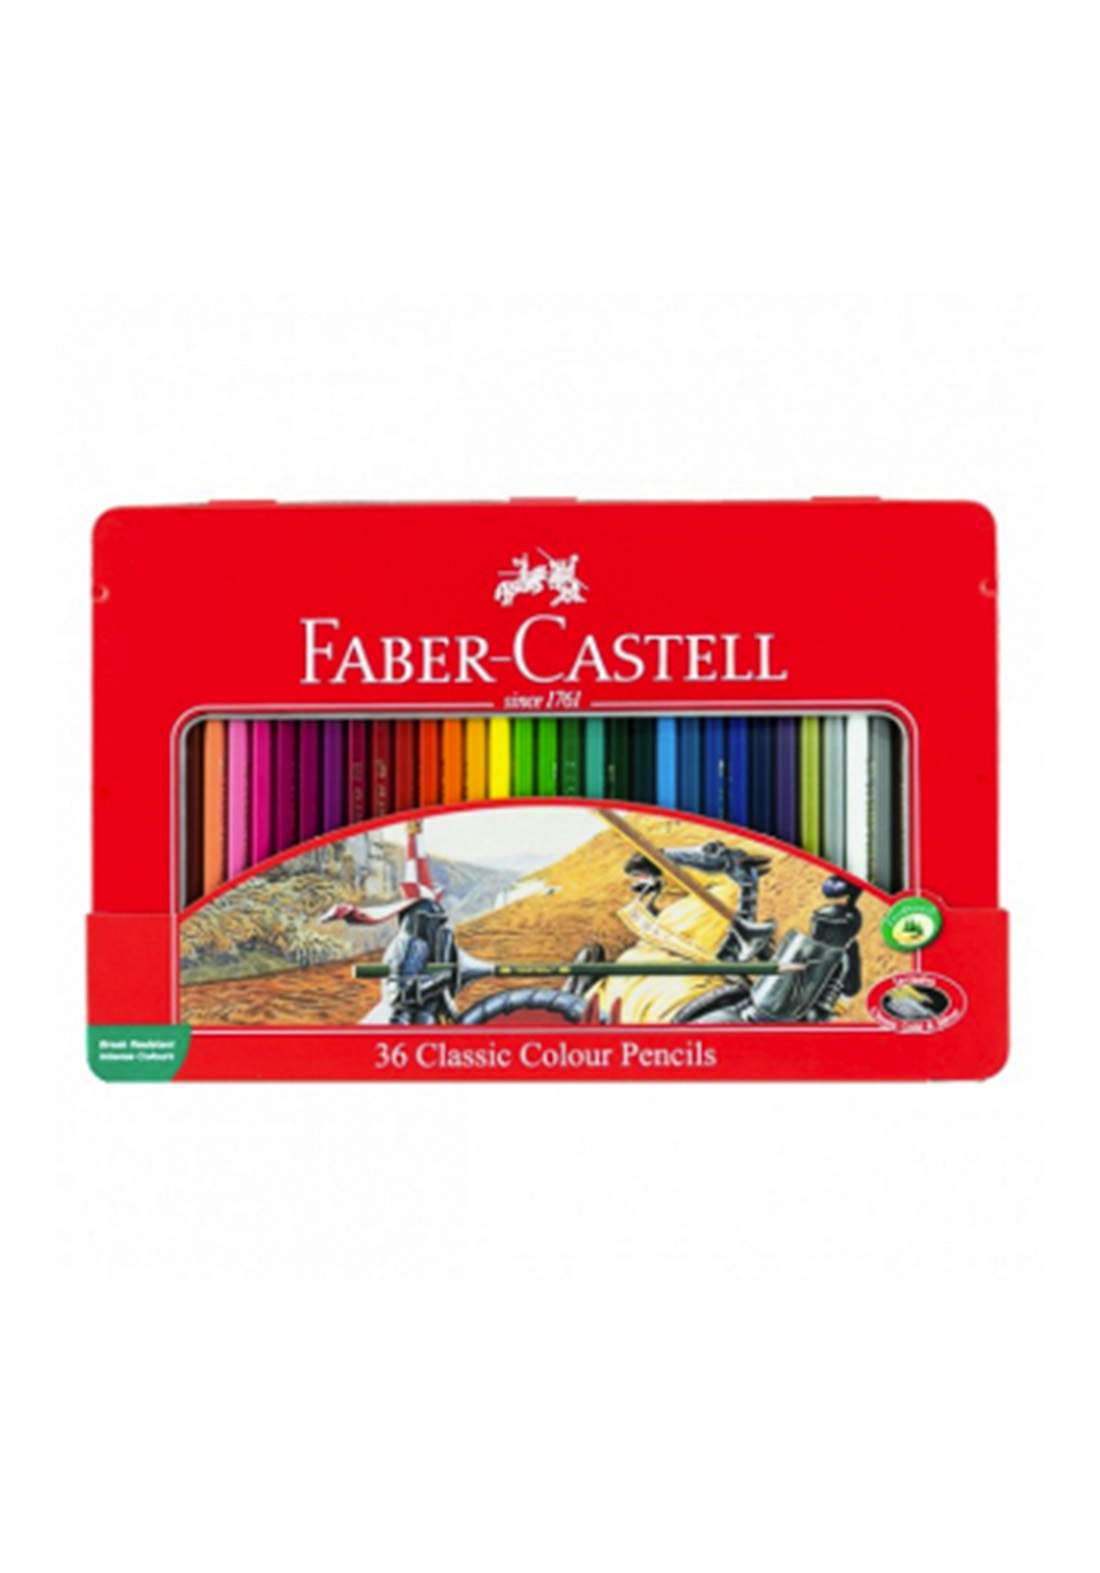 Faber Castell  36 Classic Colour Pencils اقلام تلوين خشبية 36 لون